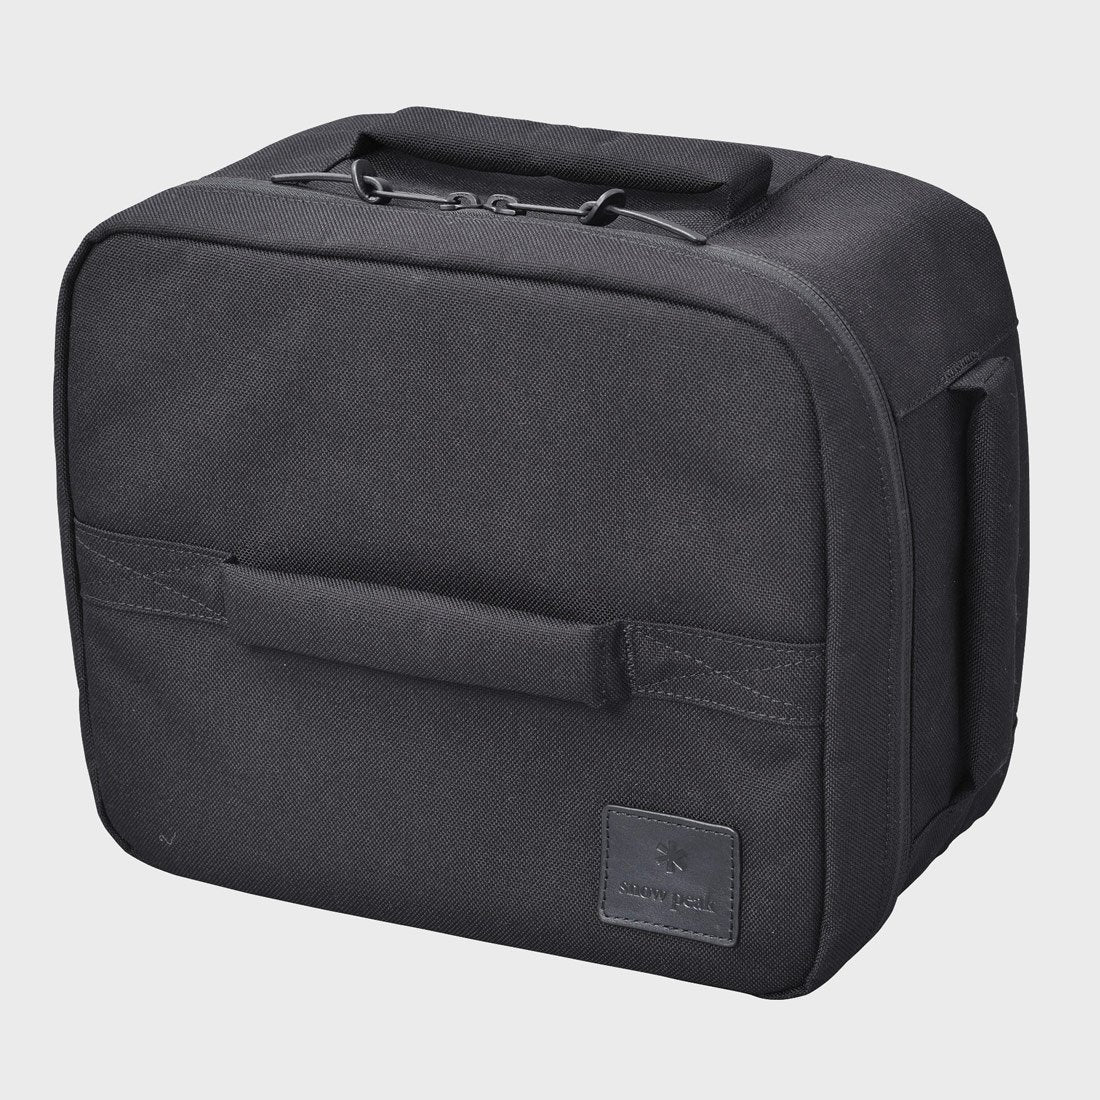 Snow Peak Day Camp System Gear Case Black